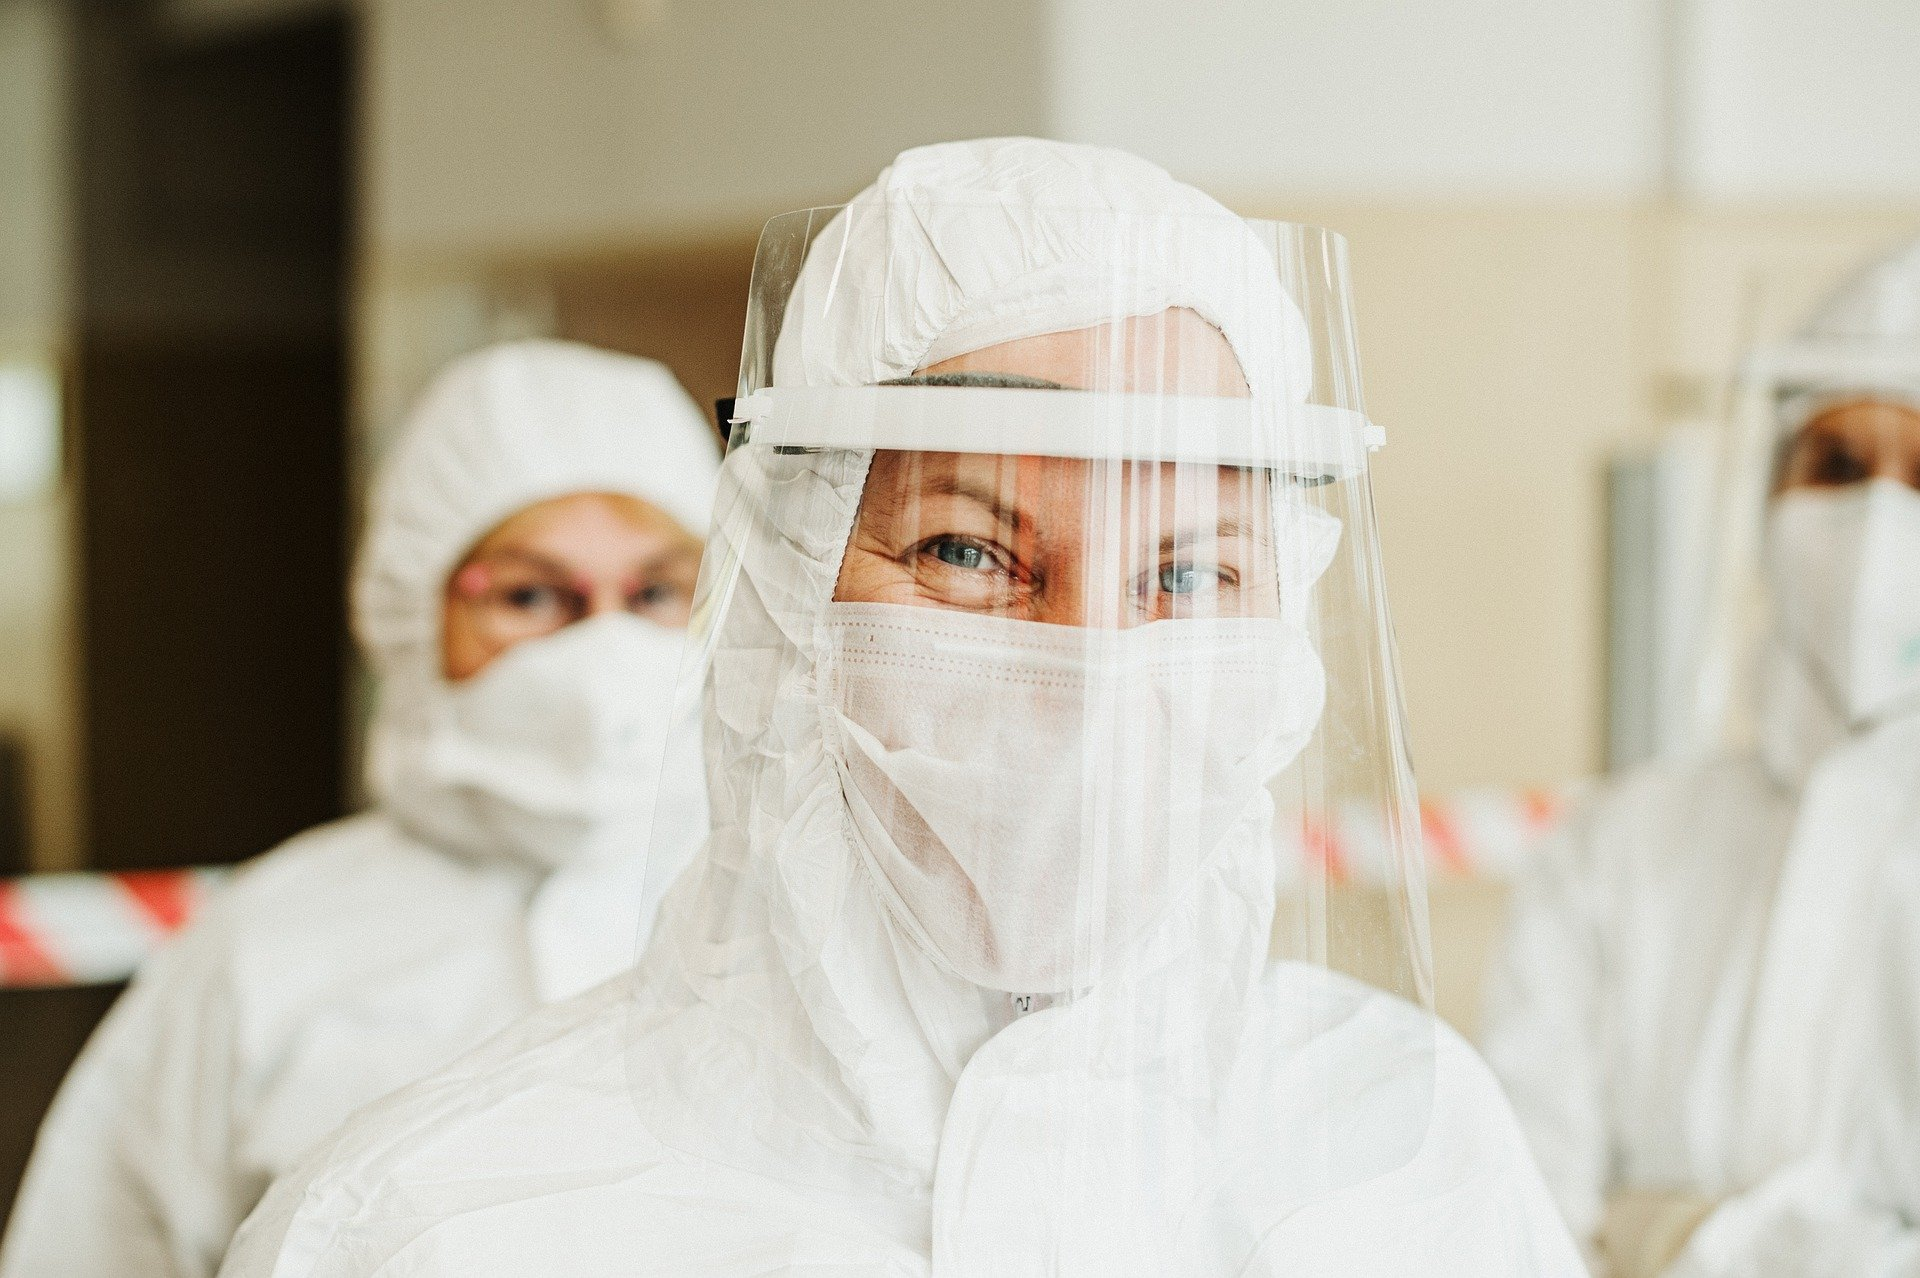 protective-suit-5716753_1920